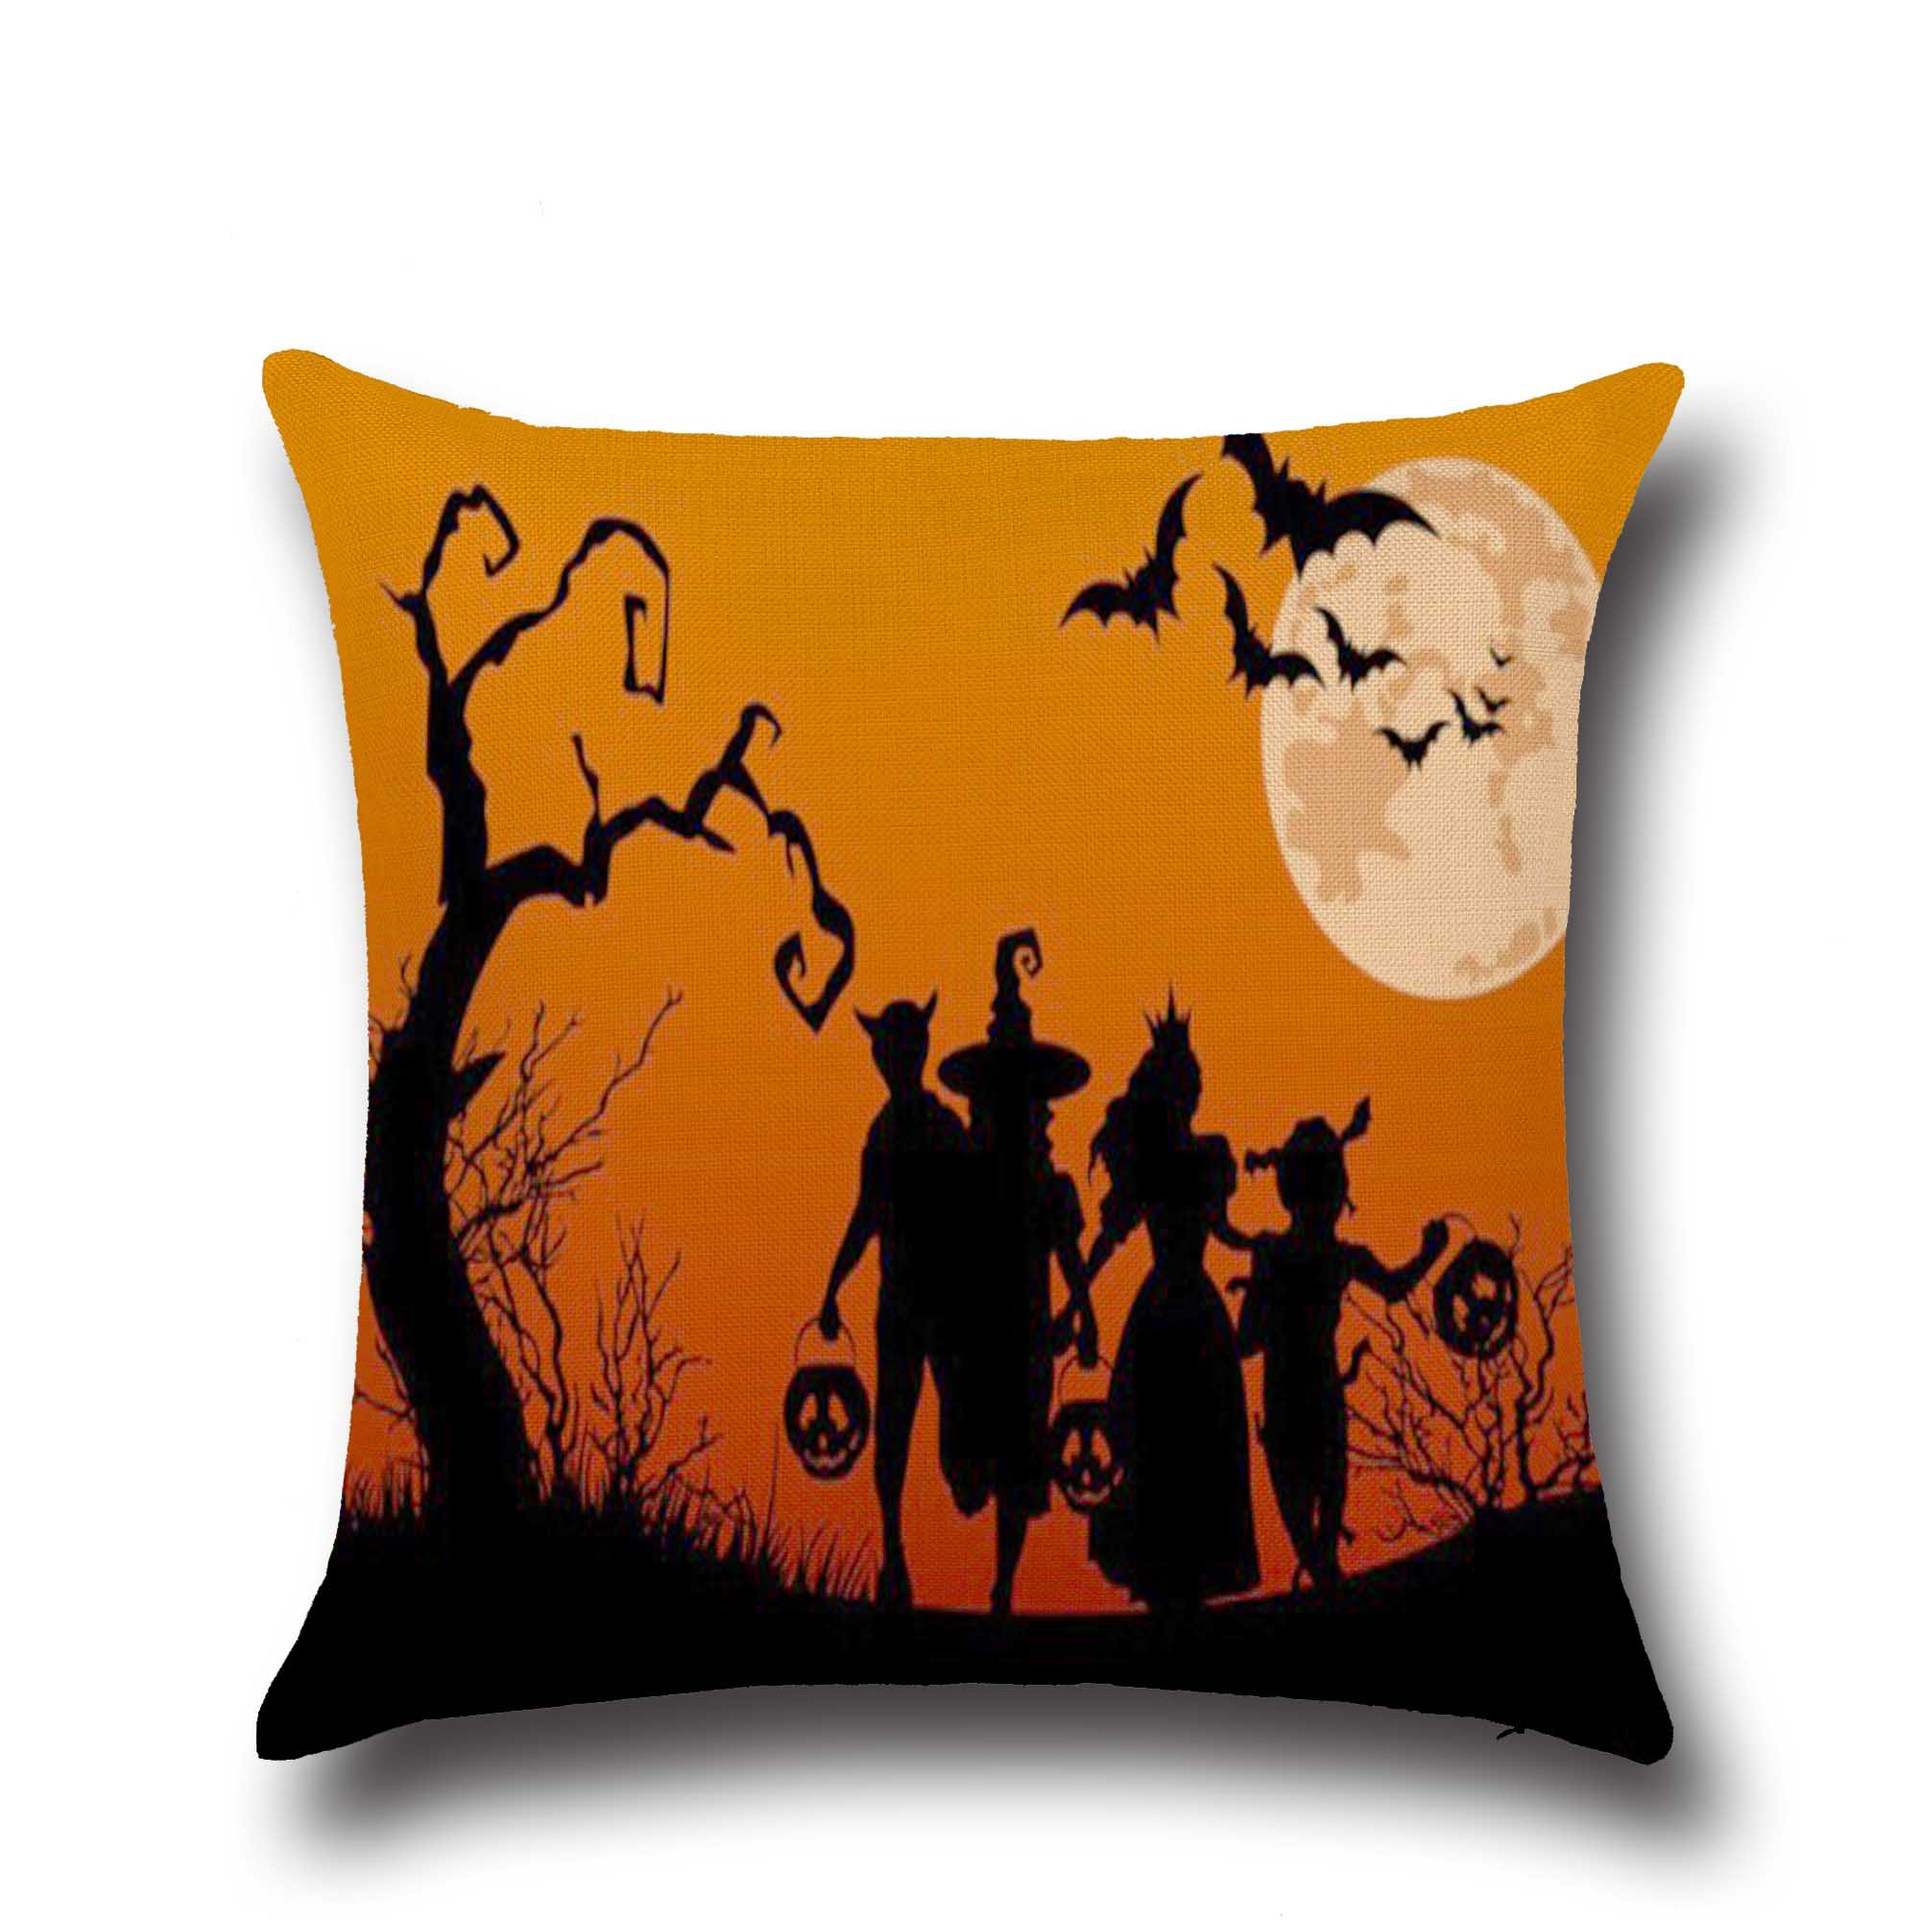 Halloween Dark Witch Pattern Pillowcase Cotton Linen Throw Pillow Cushion Cover Seat Home Decoration Sofa Decor